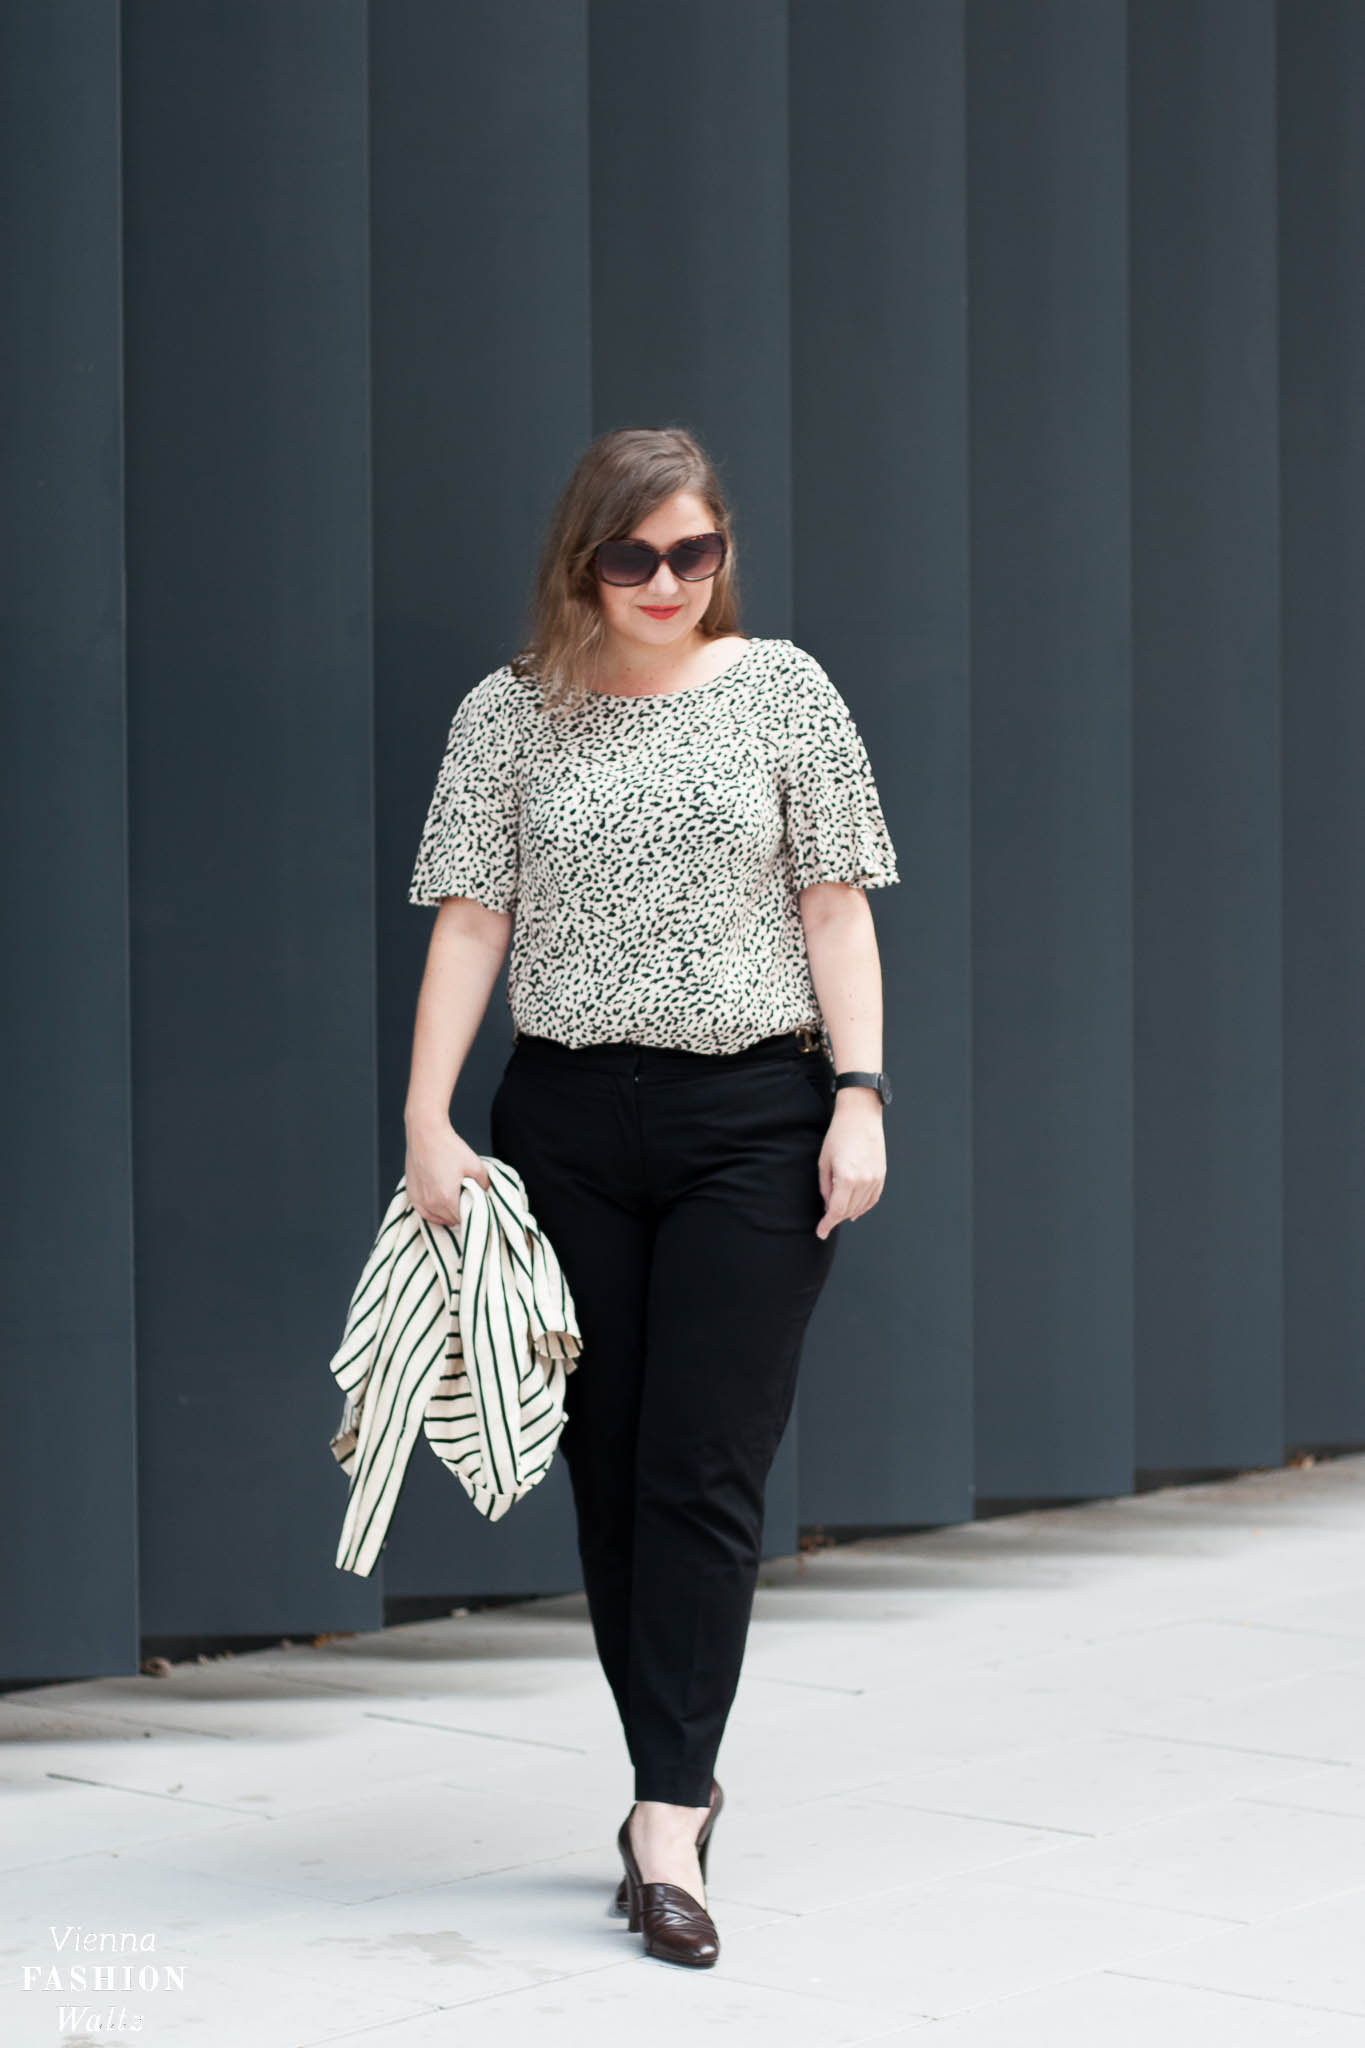 Herbsttrend Leoprint & Stylingtipps, Fashion, Outfit, Trends, Style, H&M Leo Shirt, Vintage Schuhe